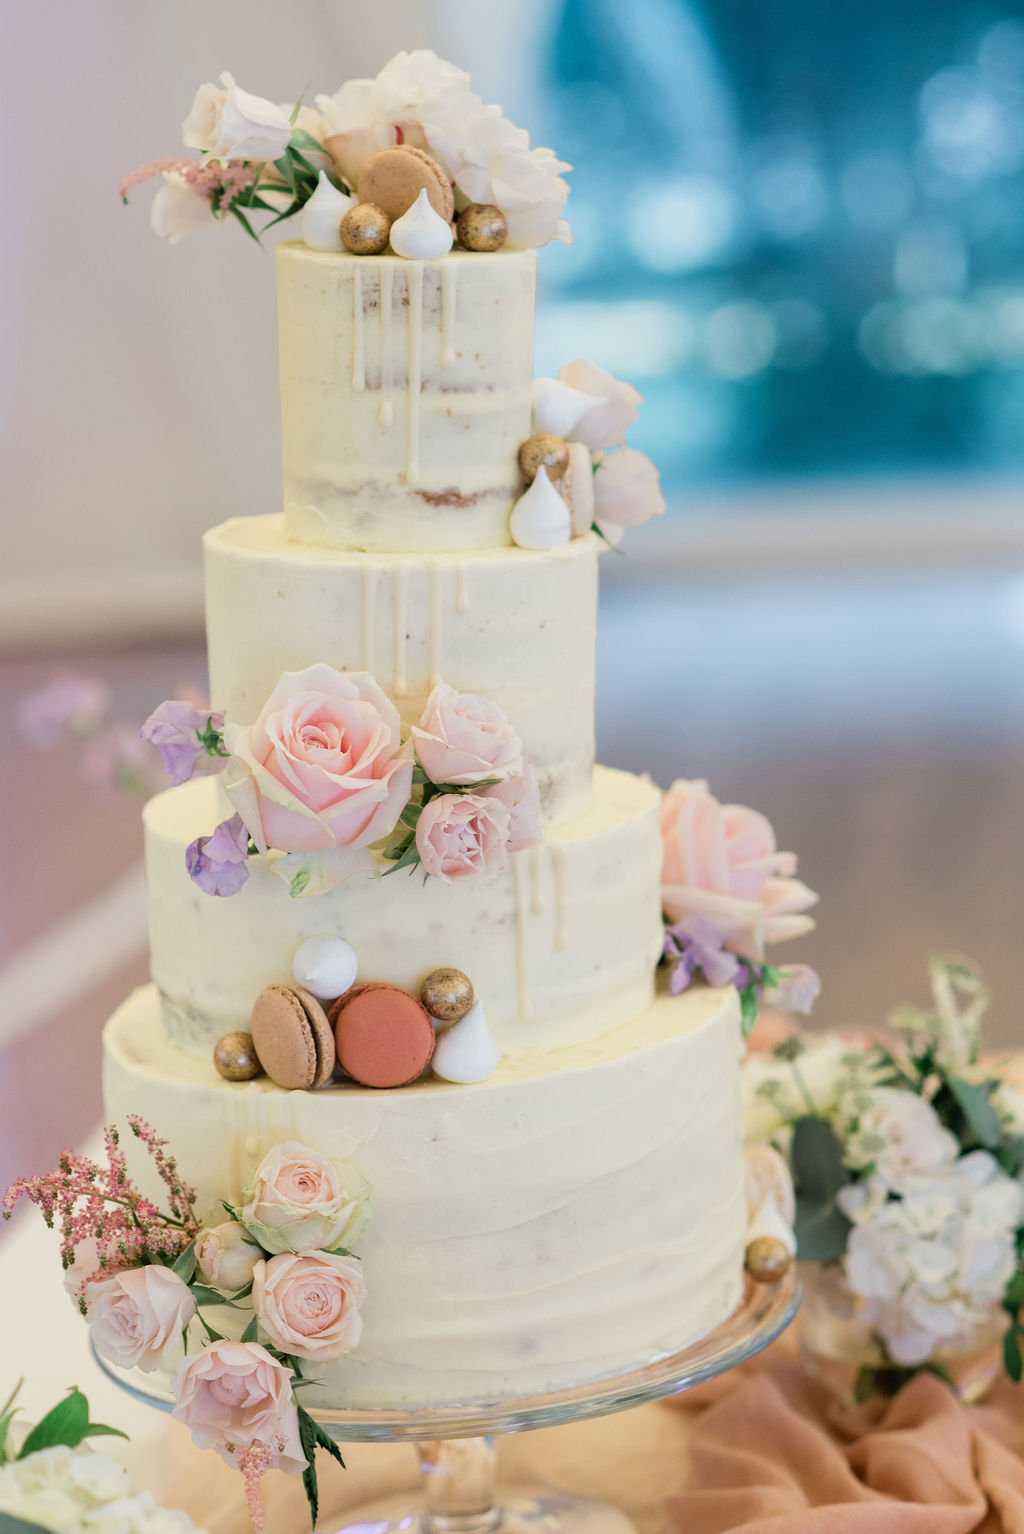 4 tier buttercream cake for a summer wedding at Chiswick House, London | Sugar Plum Bakes